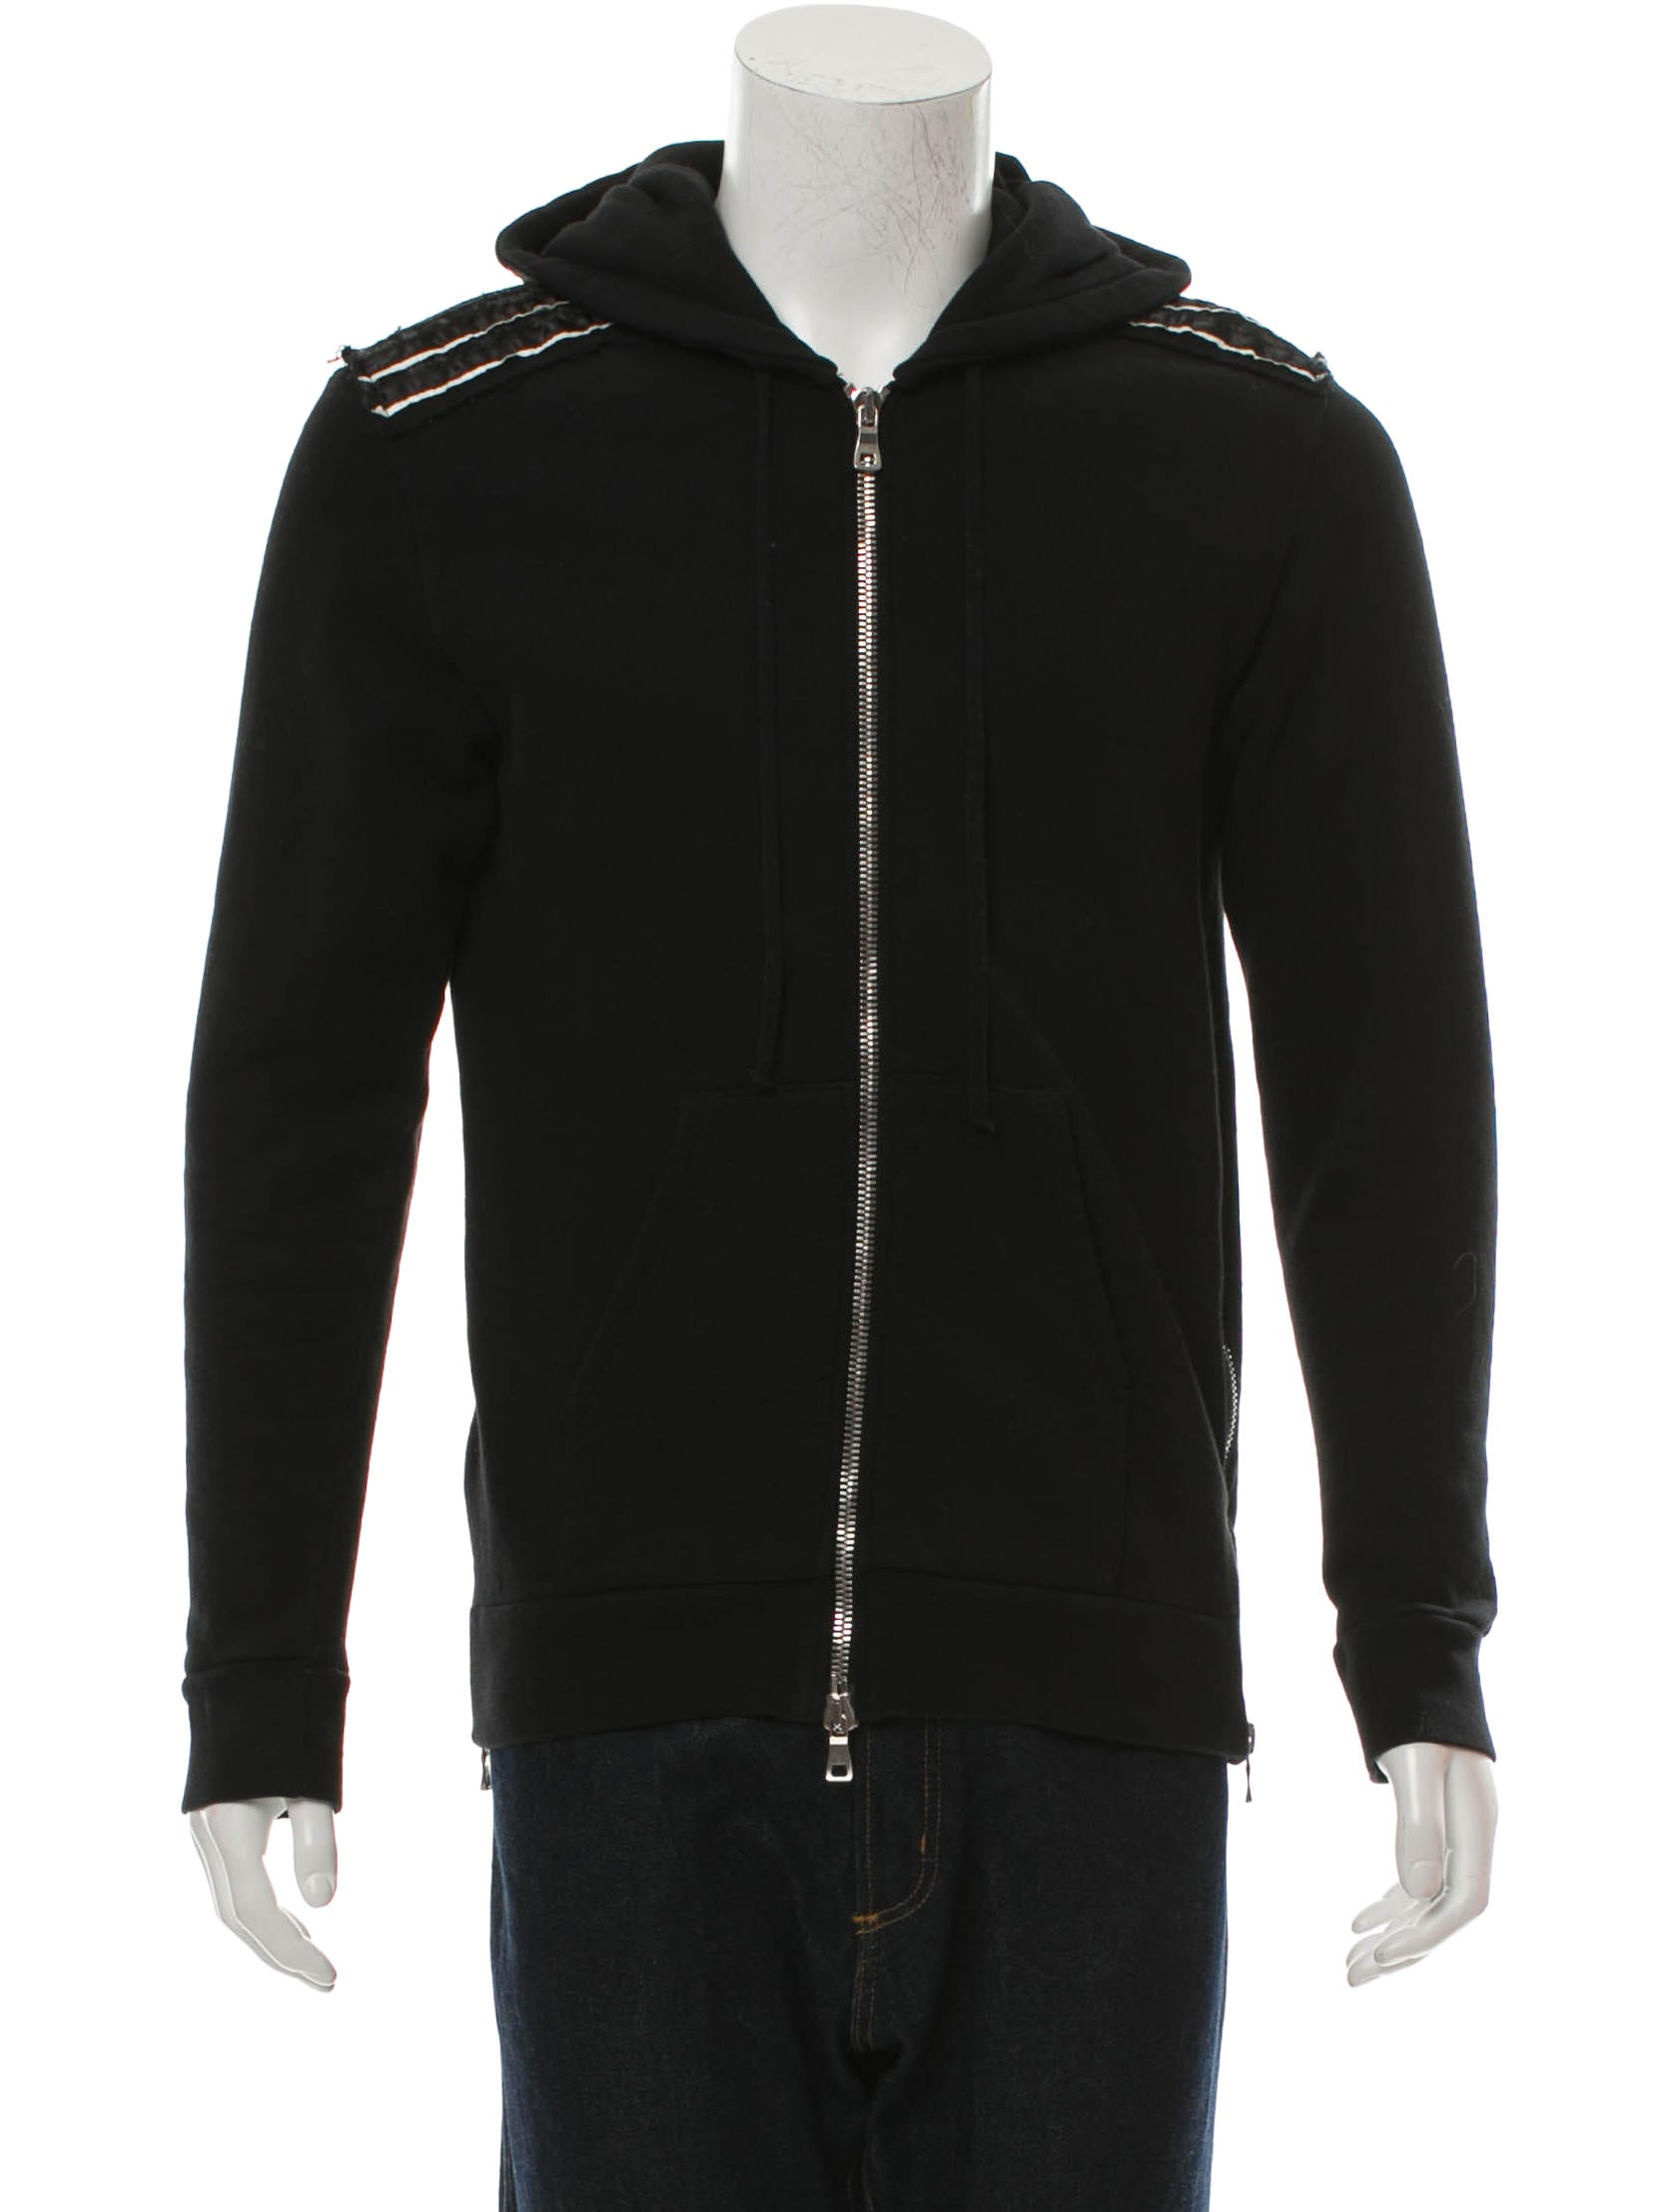 Balmain Woven Zip-Up Hoodie - Clothing - BAM22825 | The RealReal